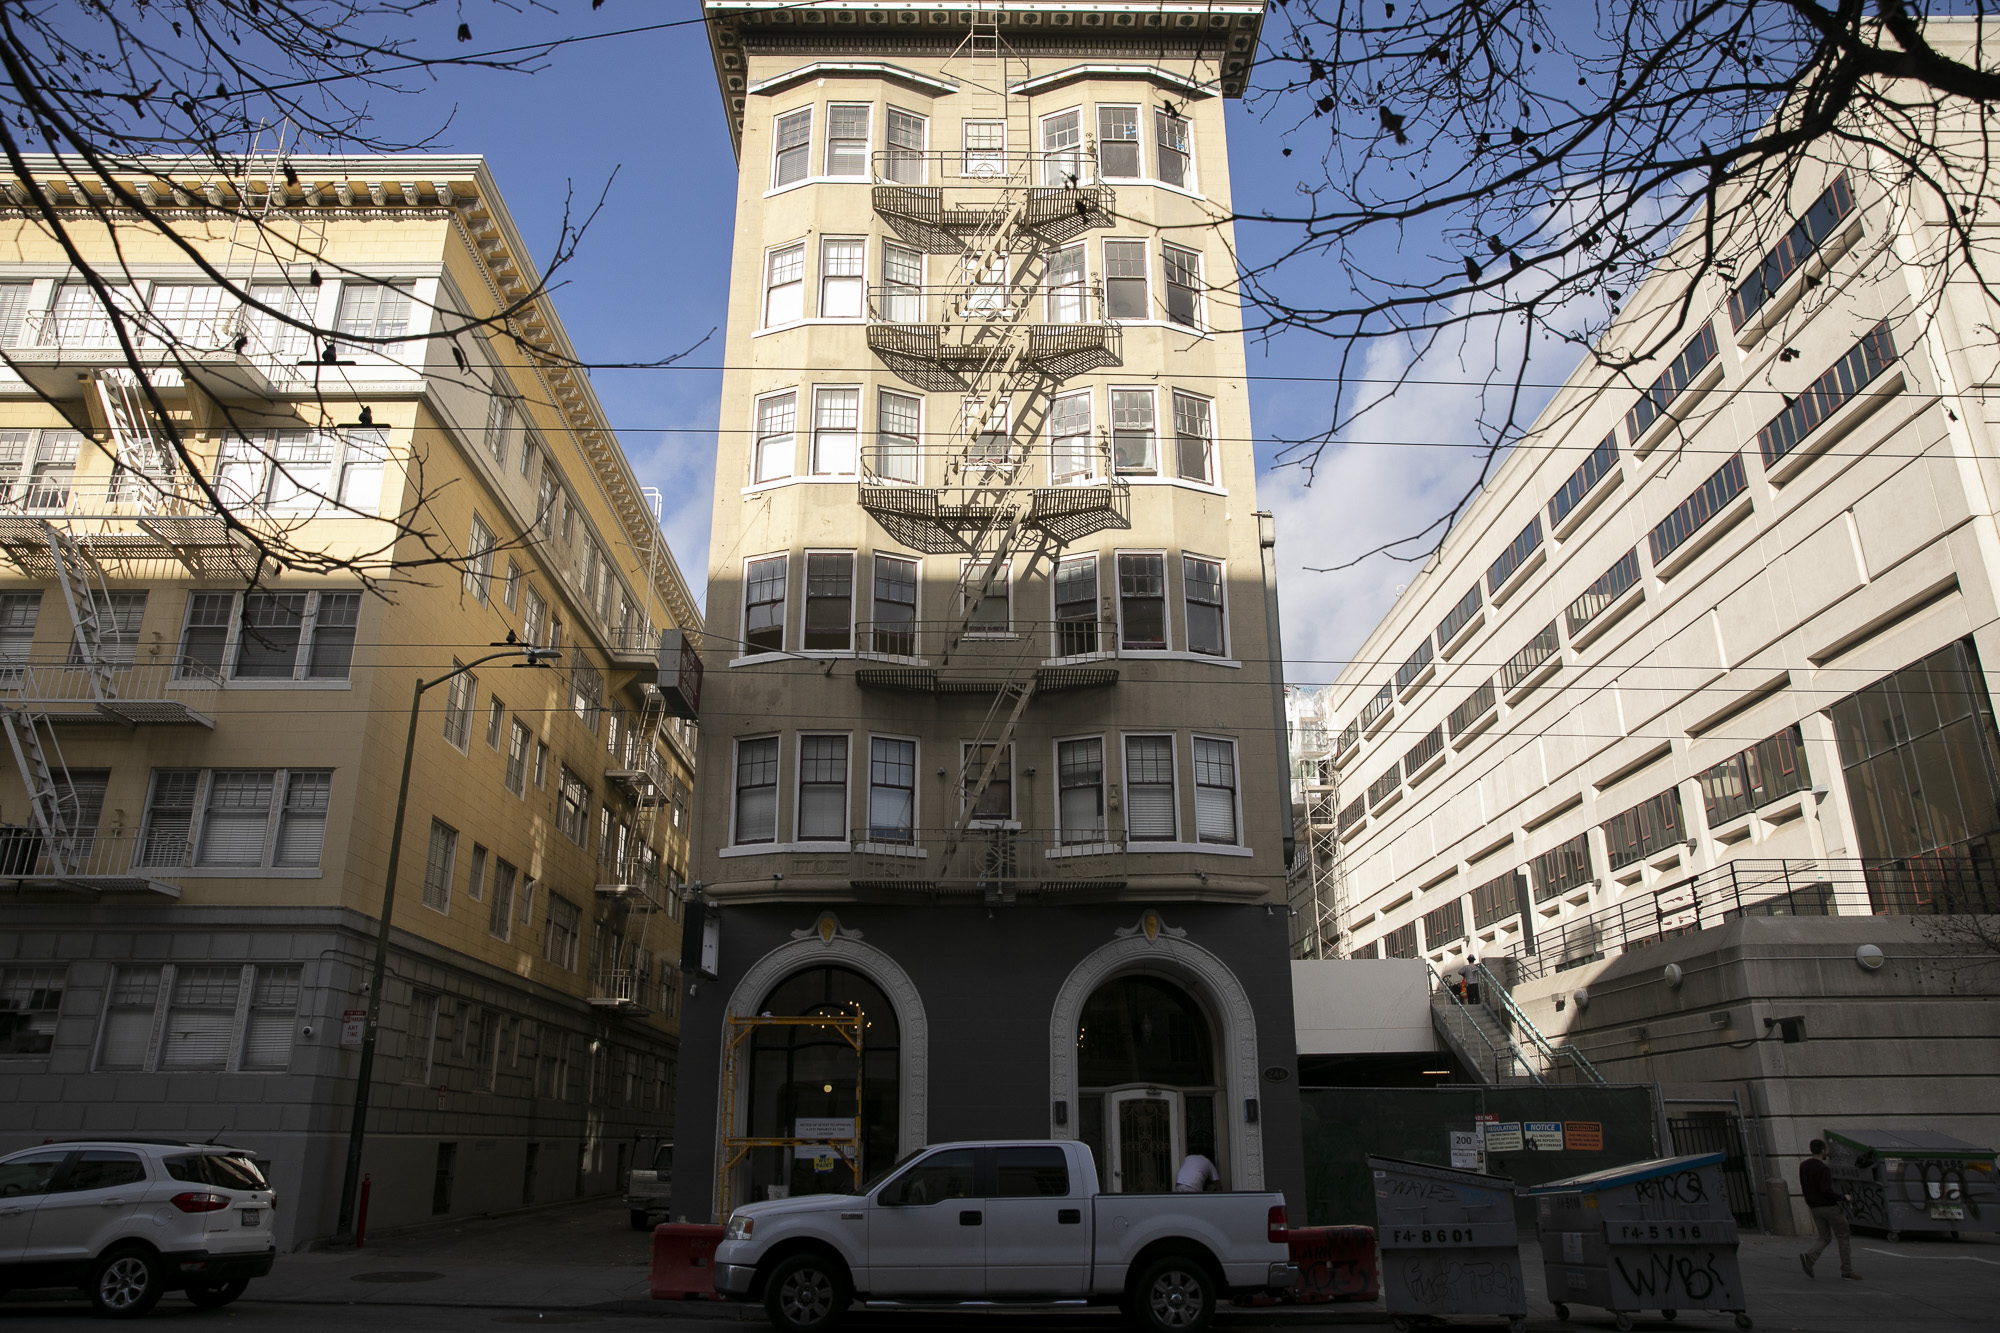 The Abigail Hotel, formerly a single resident occupancy building, in San Francico's Tenderloin neighborhood is being converted into 62 low-income units for formerly-homeless individuals